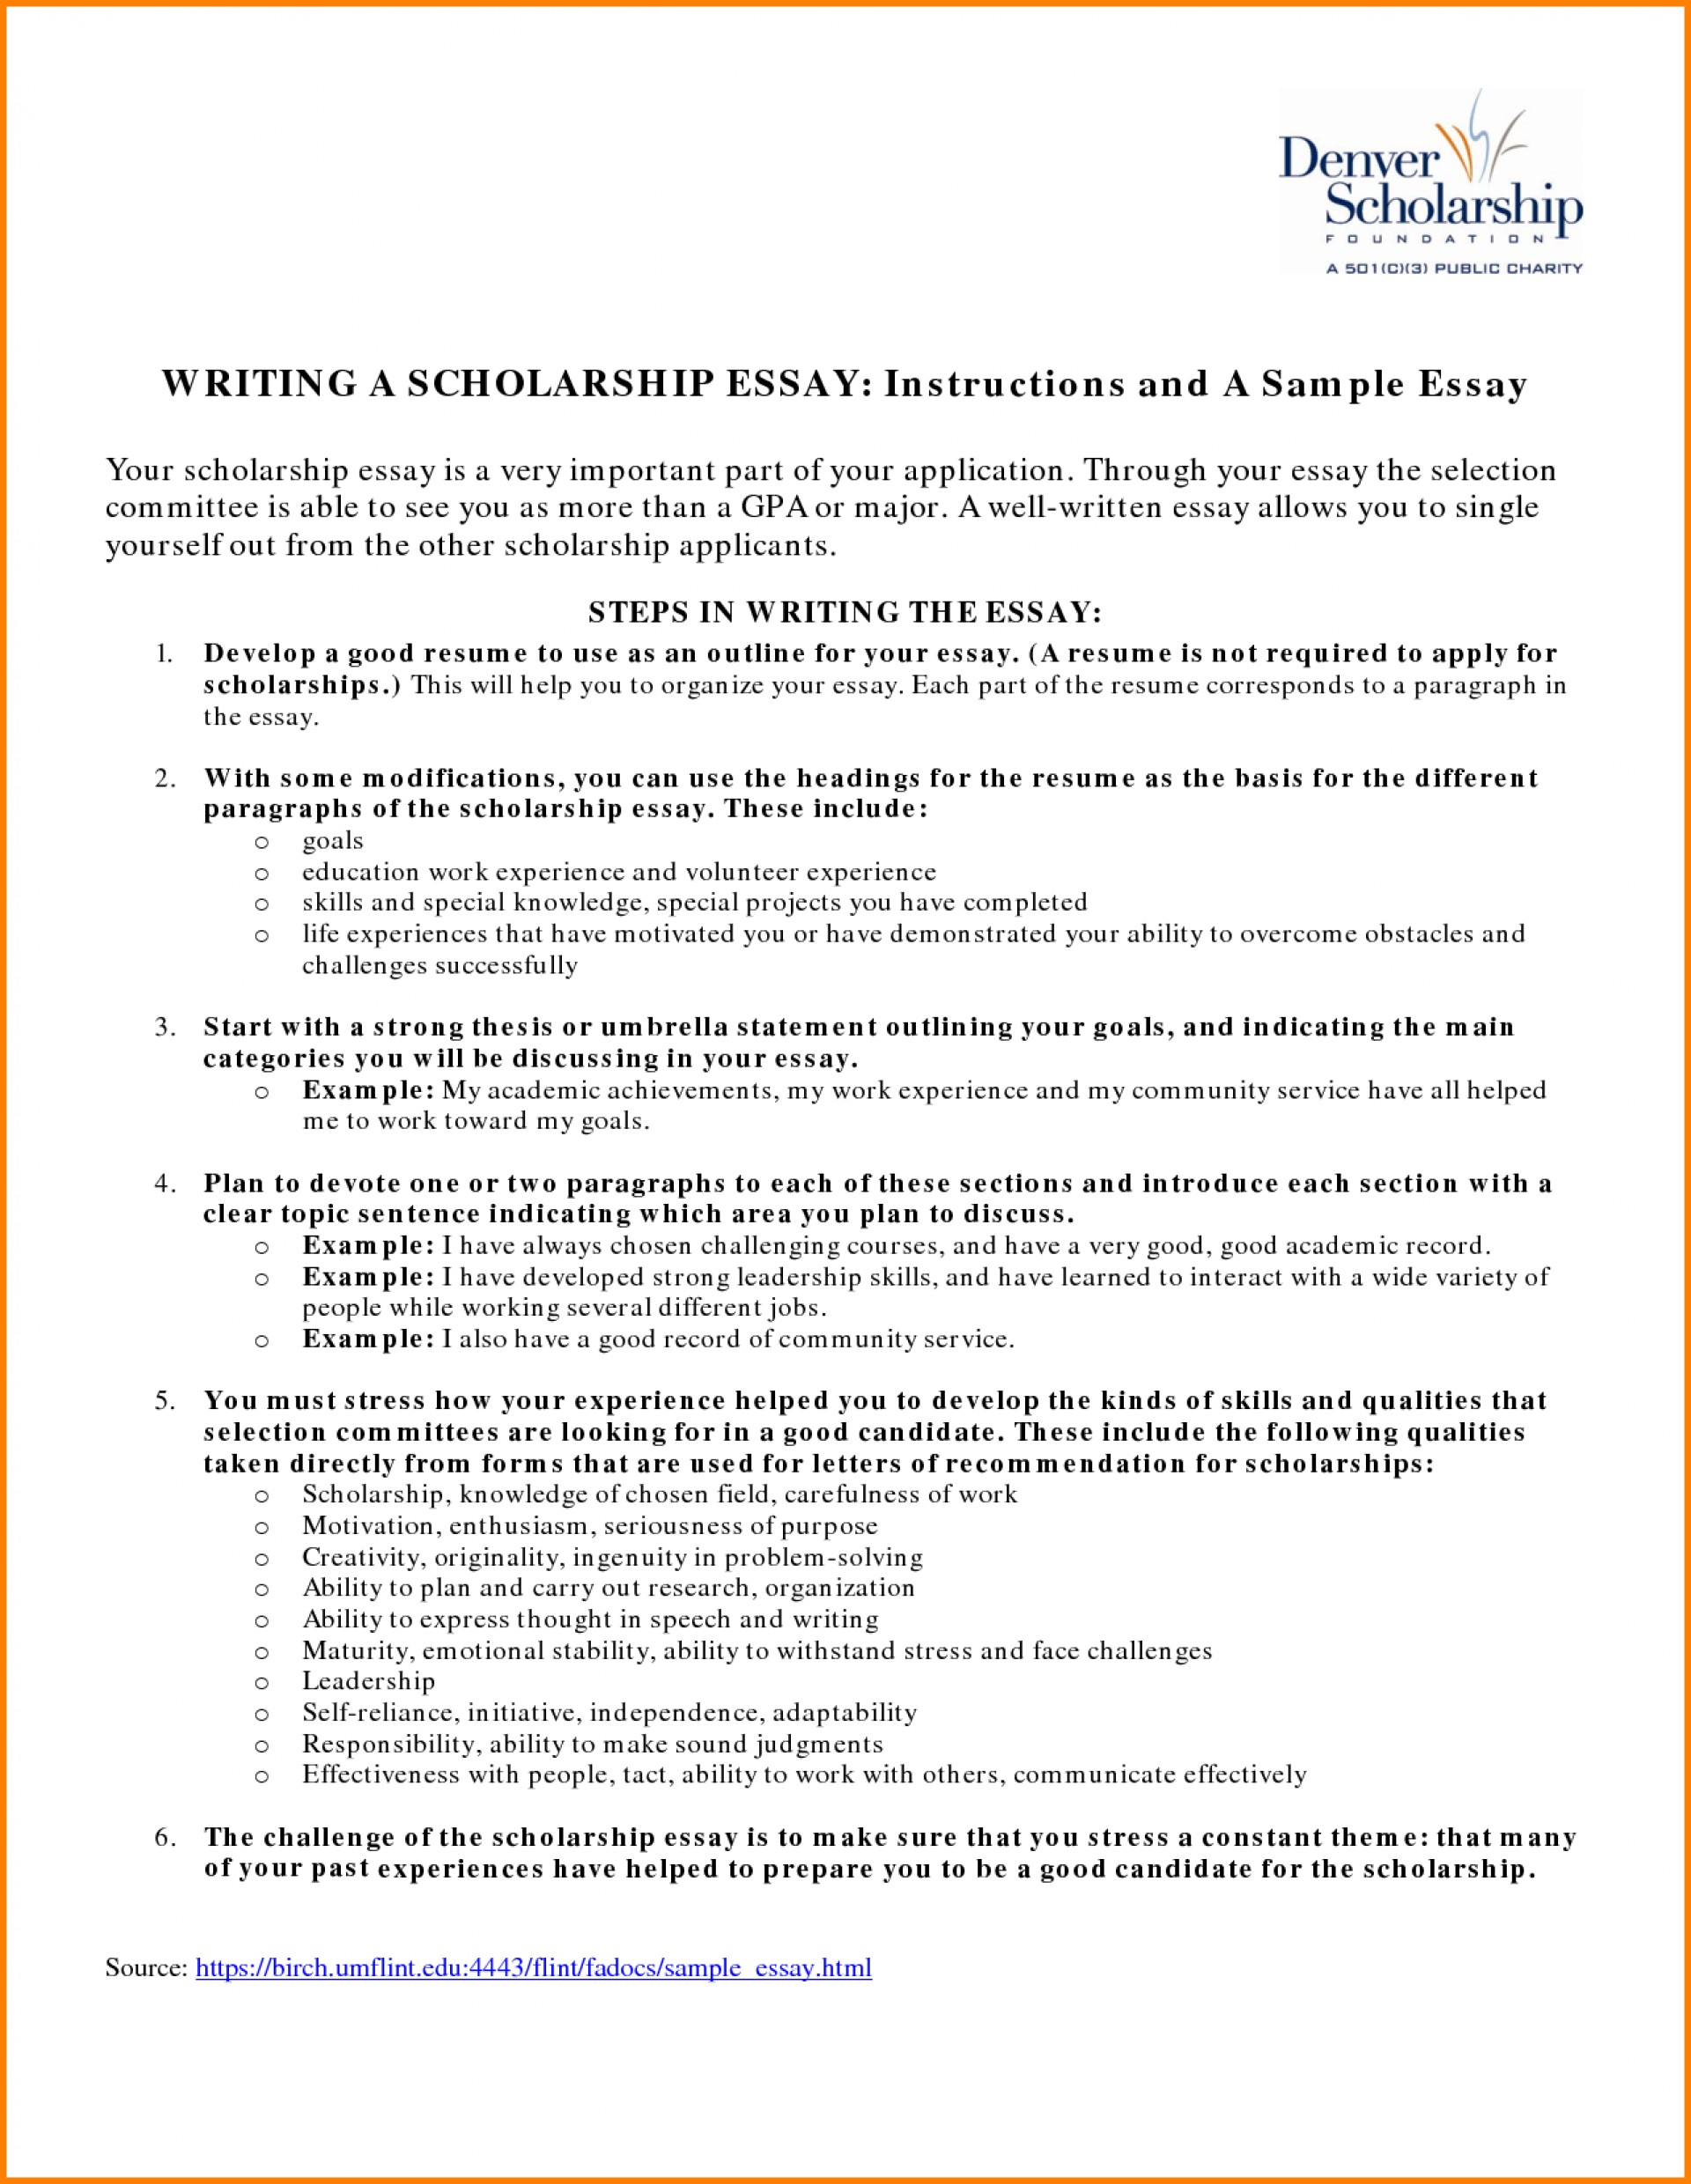 009 Essay Example Fair Resume Examples For Scholarships In Scholarship Sample Of Awful Essays Nursing Why I Deserve High School Seniors 1920